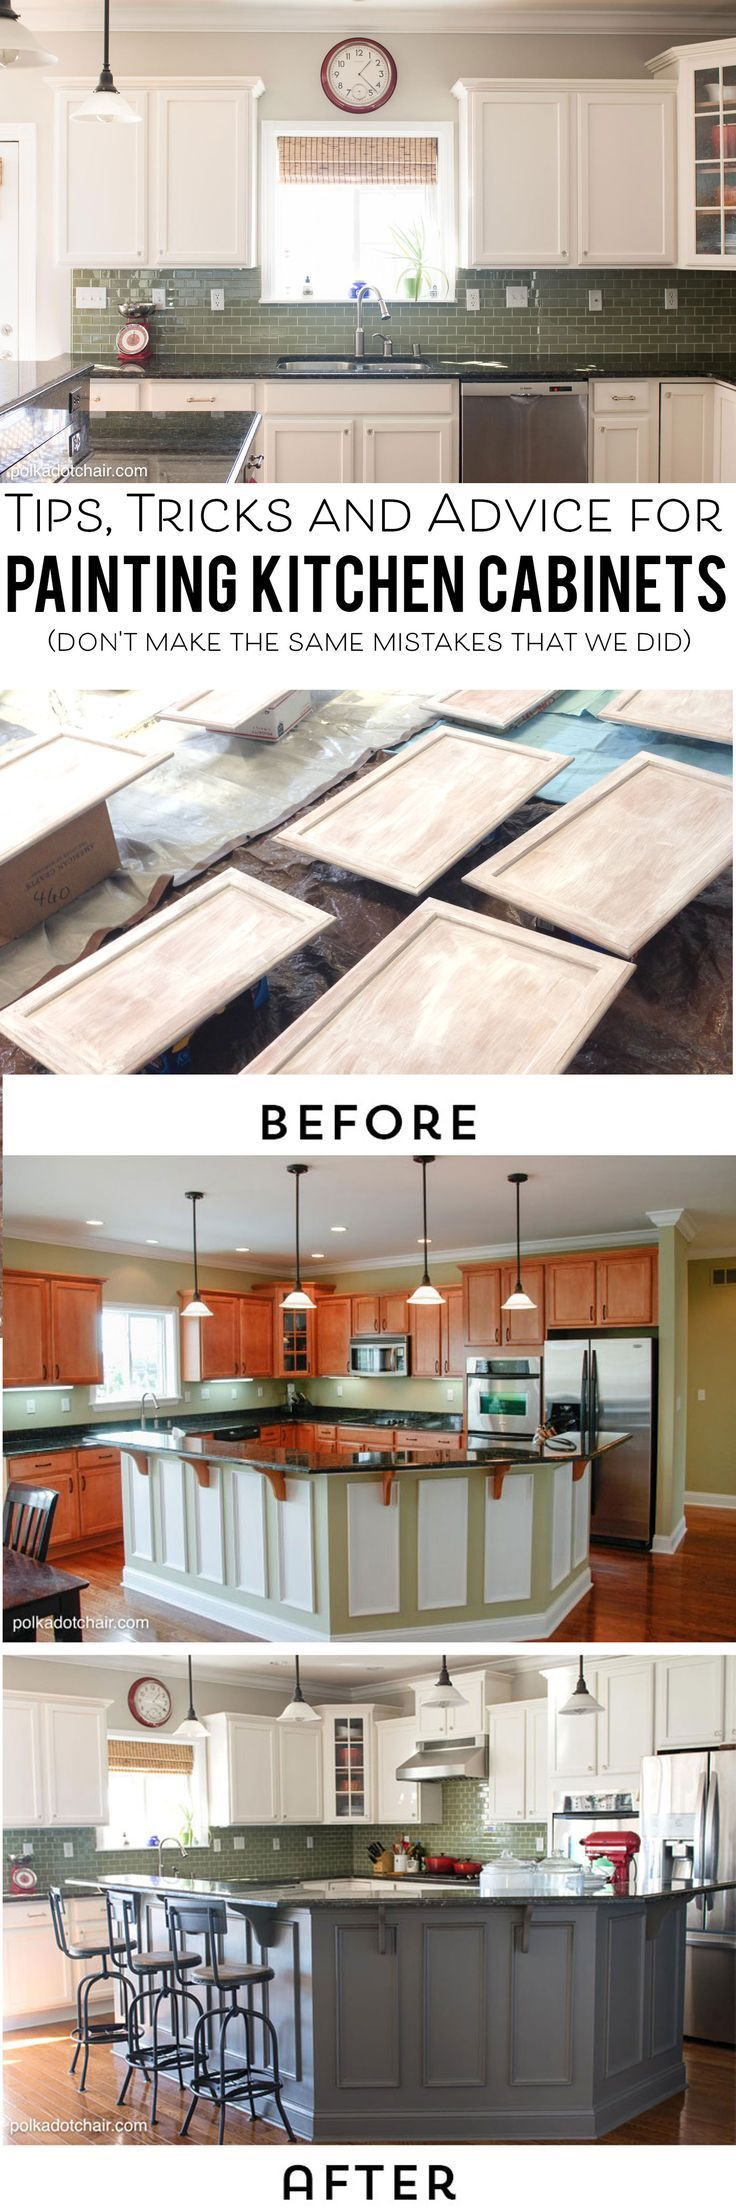 Ideas : Tips and Tricks and what NOT to do when painting your kitchen cabinets